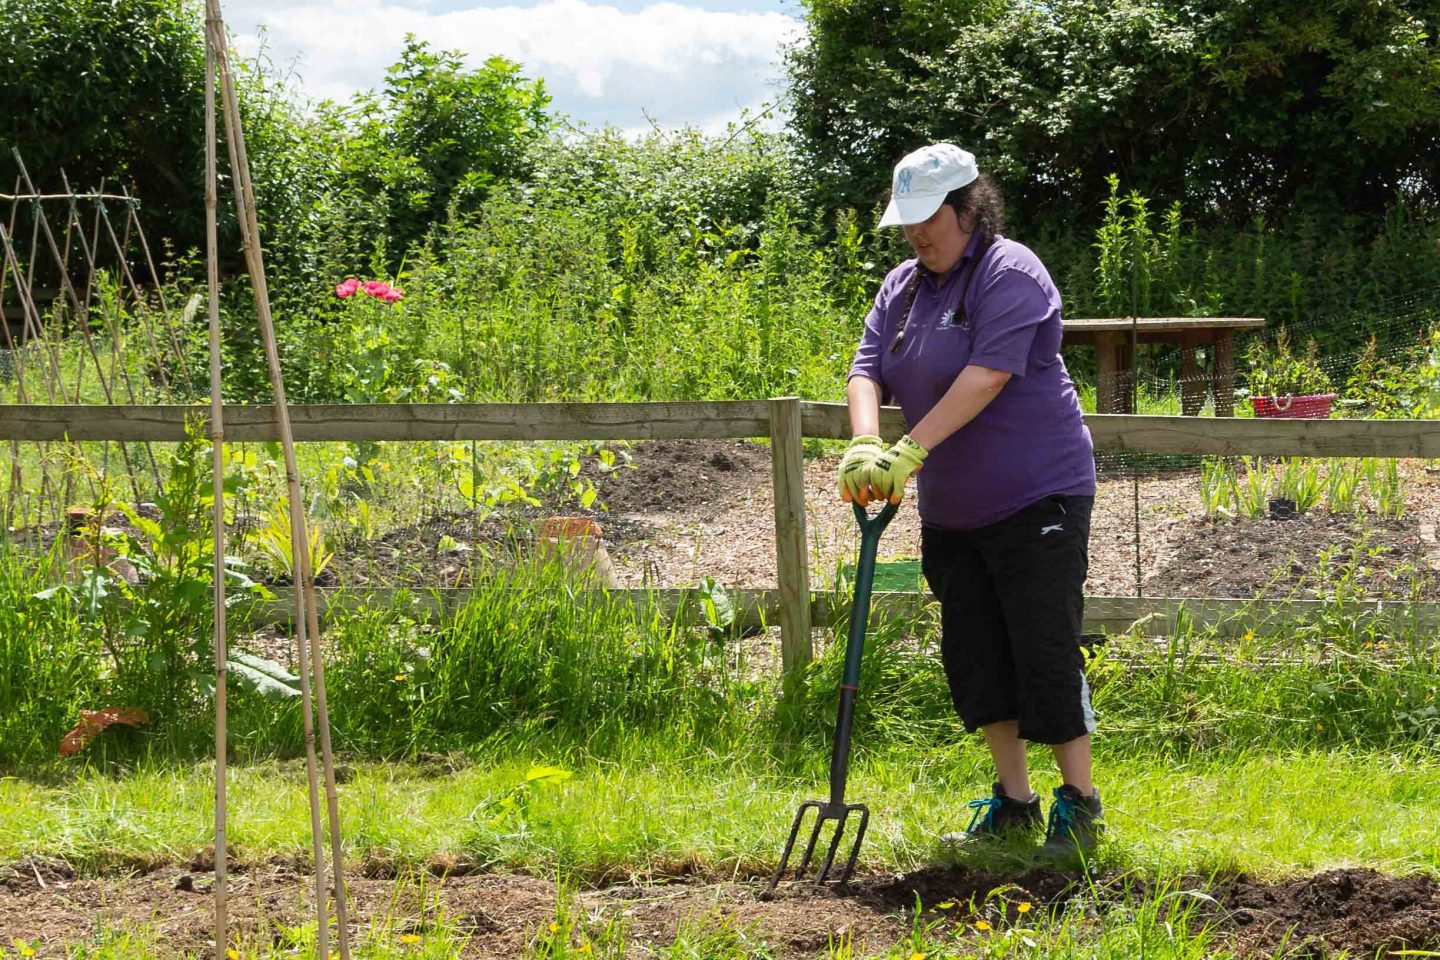 Carly working in allotment